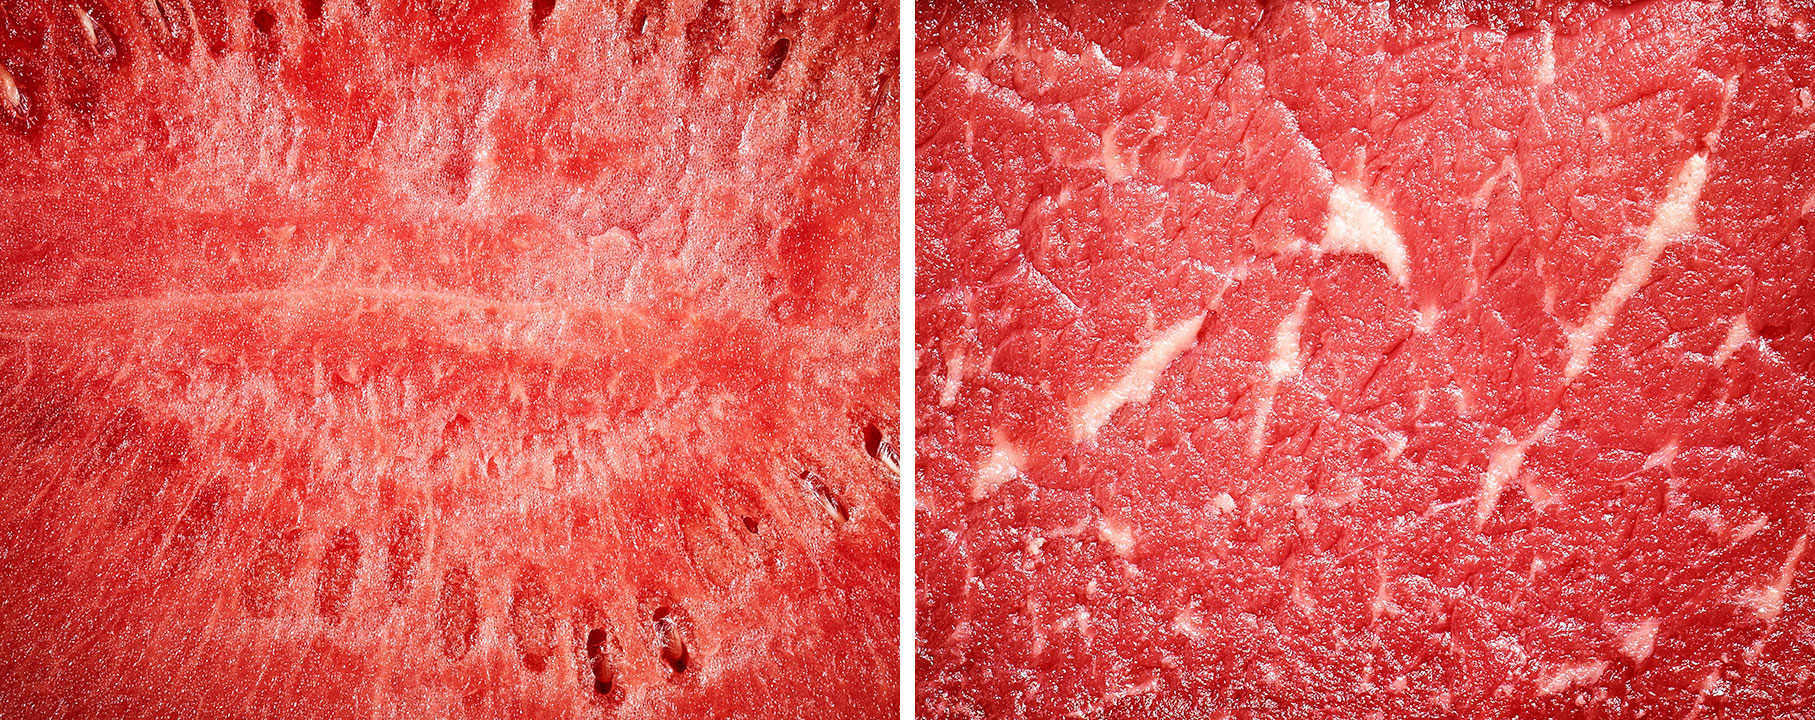 watermelon-steak-DUP2.jpg